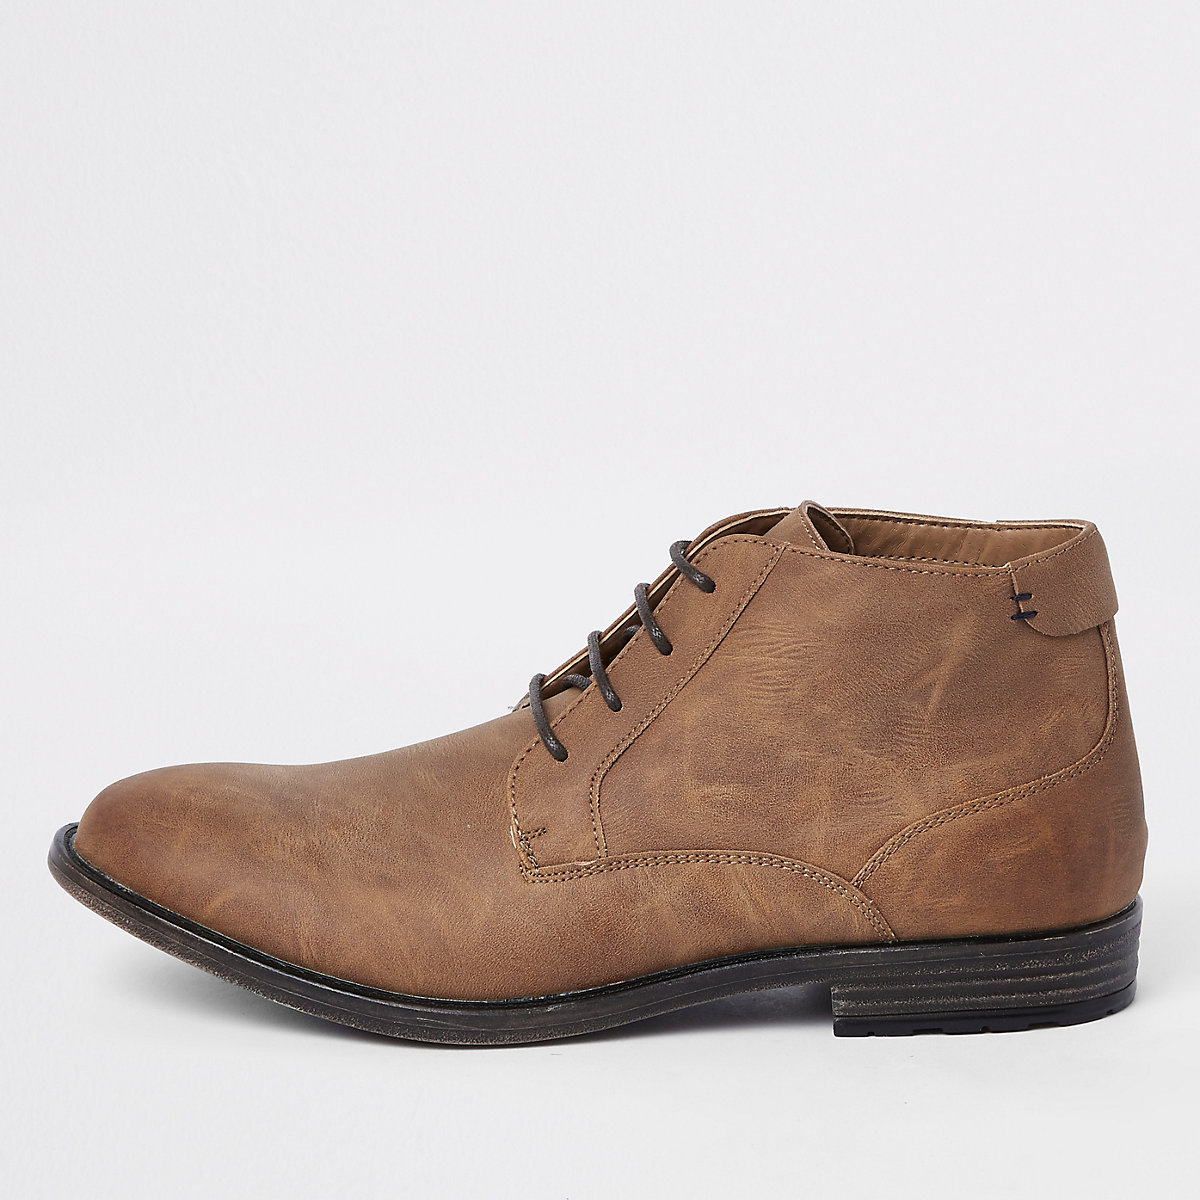 Brown lace up chukka boot